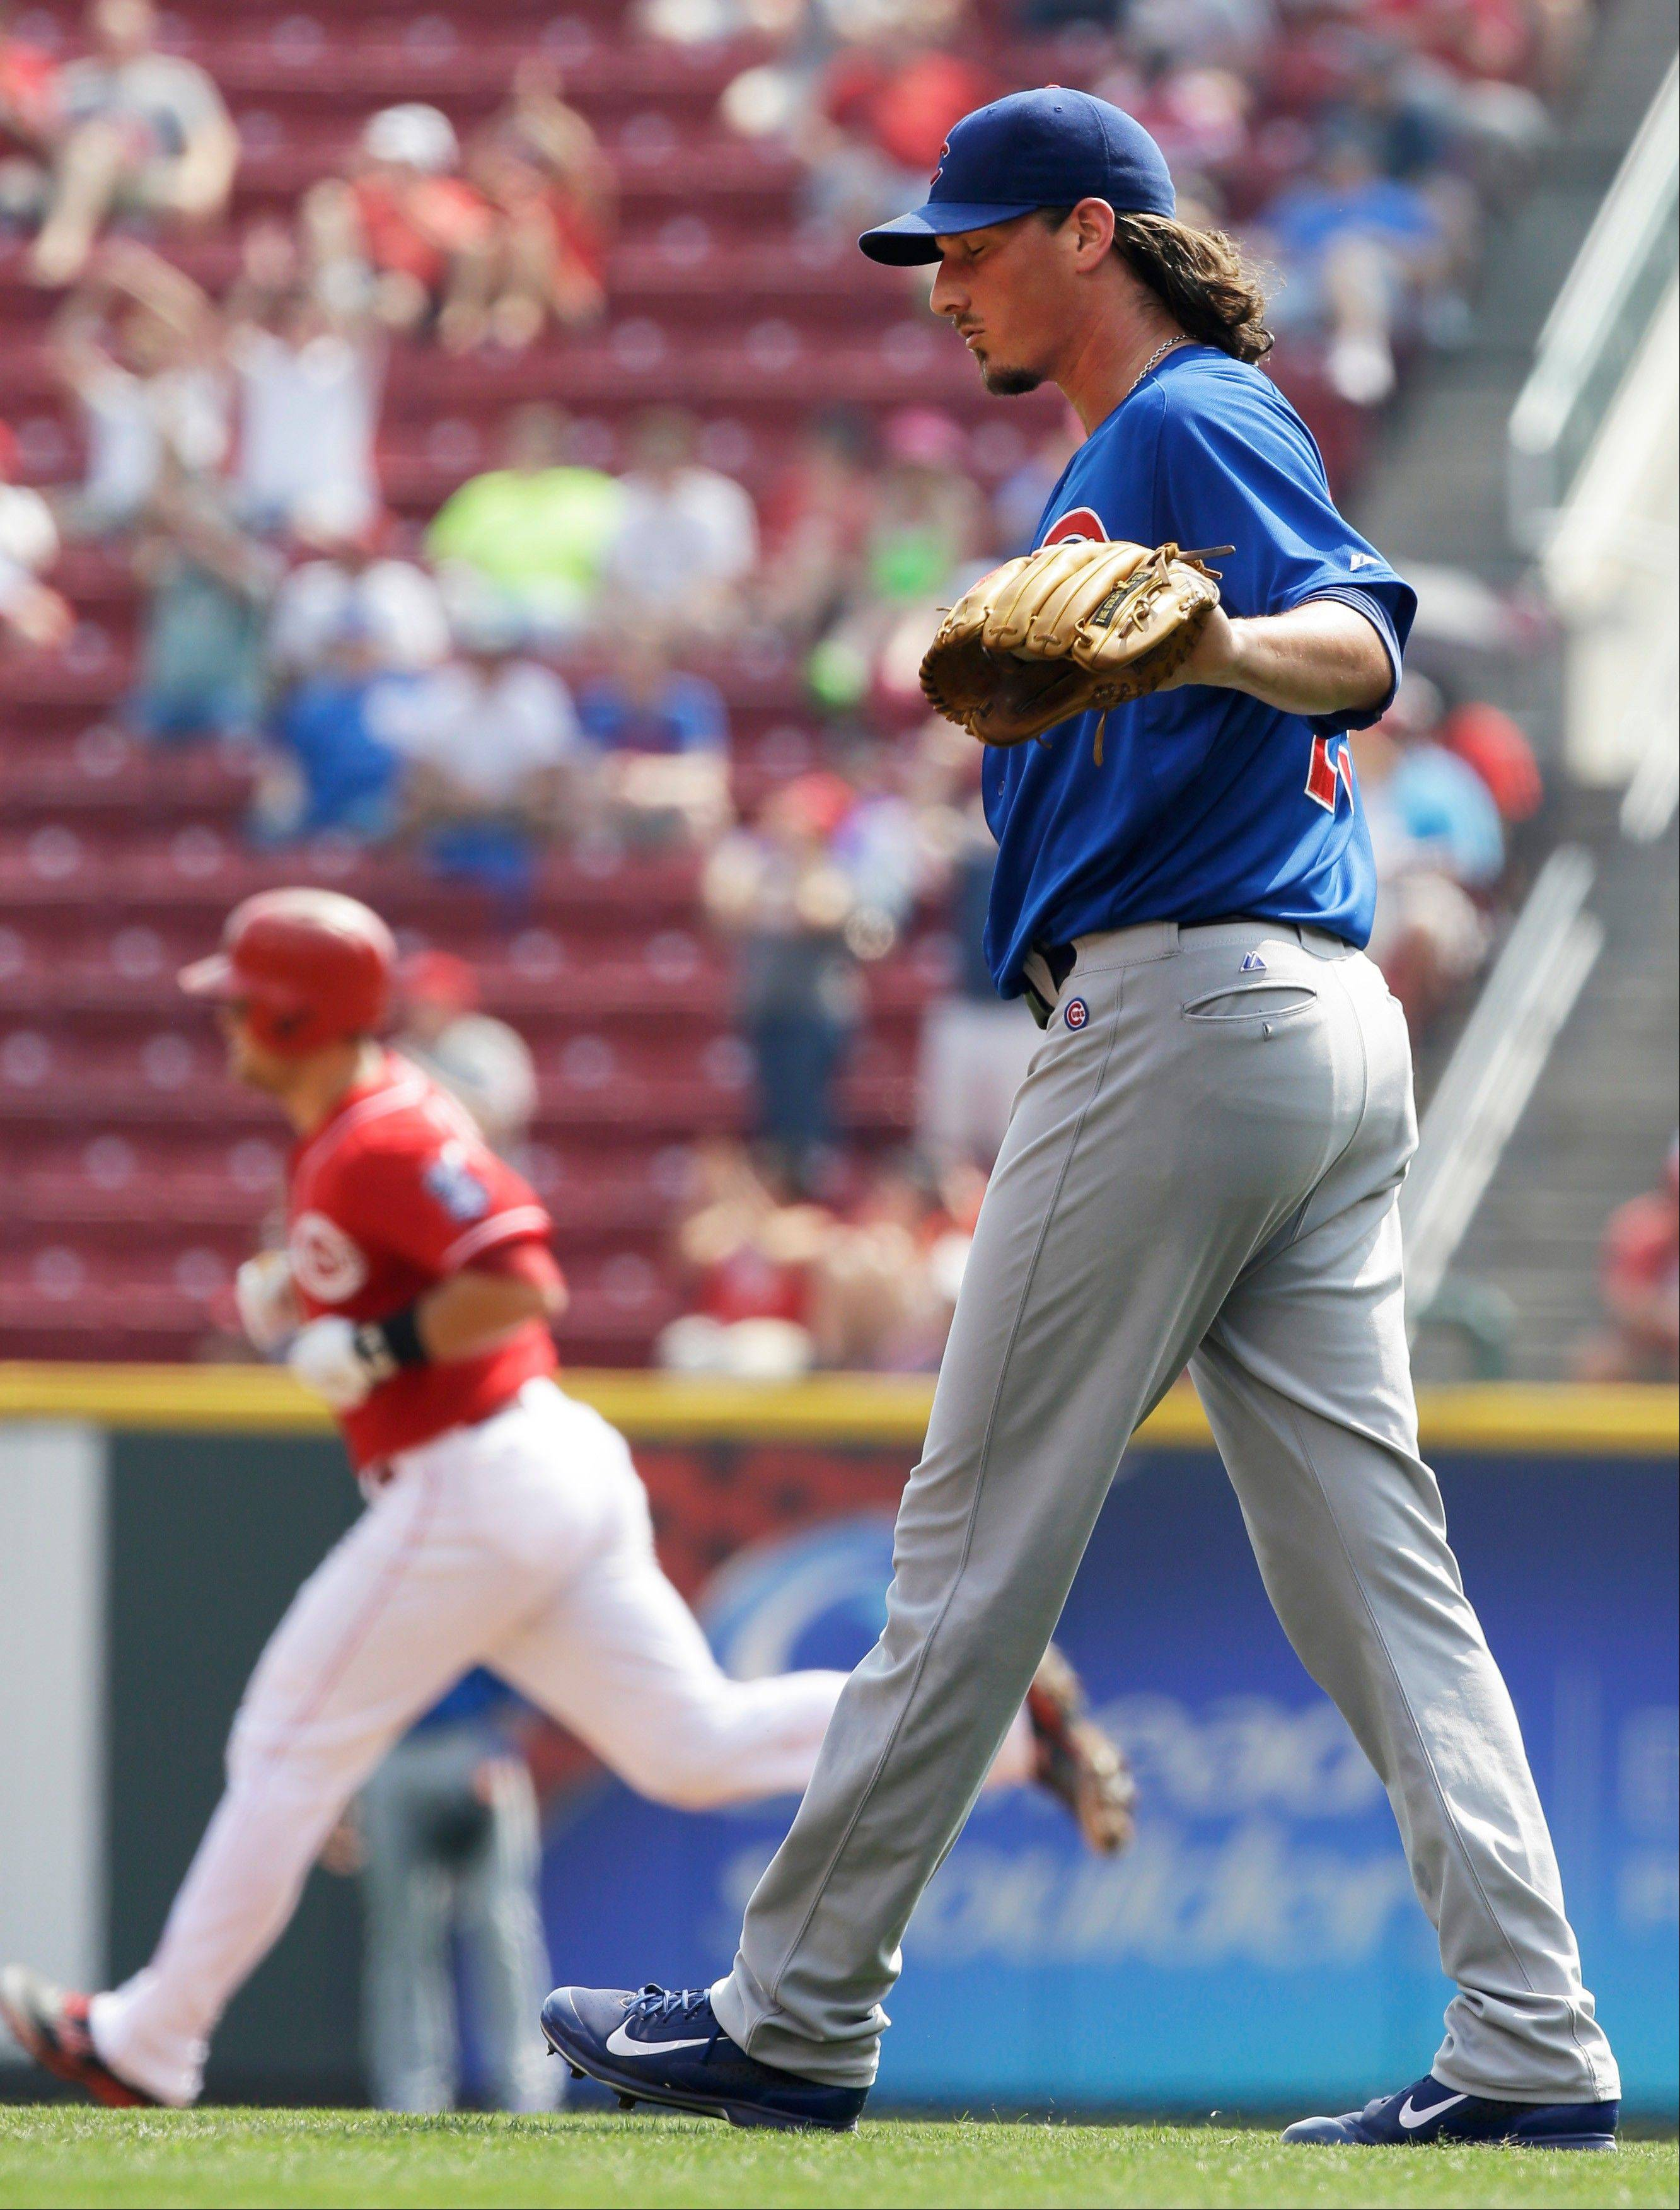 Cubs starting pitcher Jeff Samardzija walks behind the mound Wednesday after giving up a solo home run to Cincinnati Reds' Devin Mesoraco, rounding the bases at left, in the fourth inning in Cincinnati.